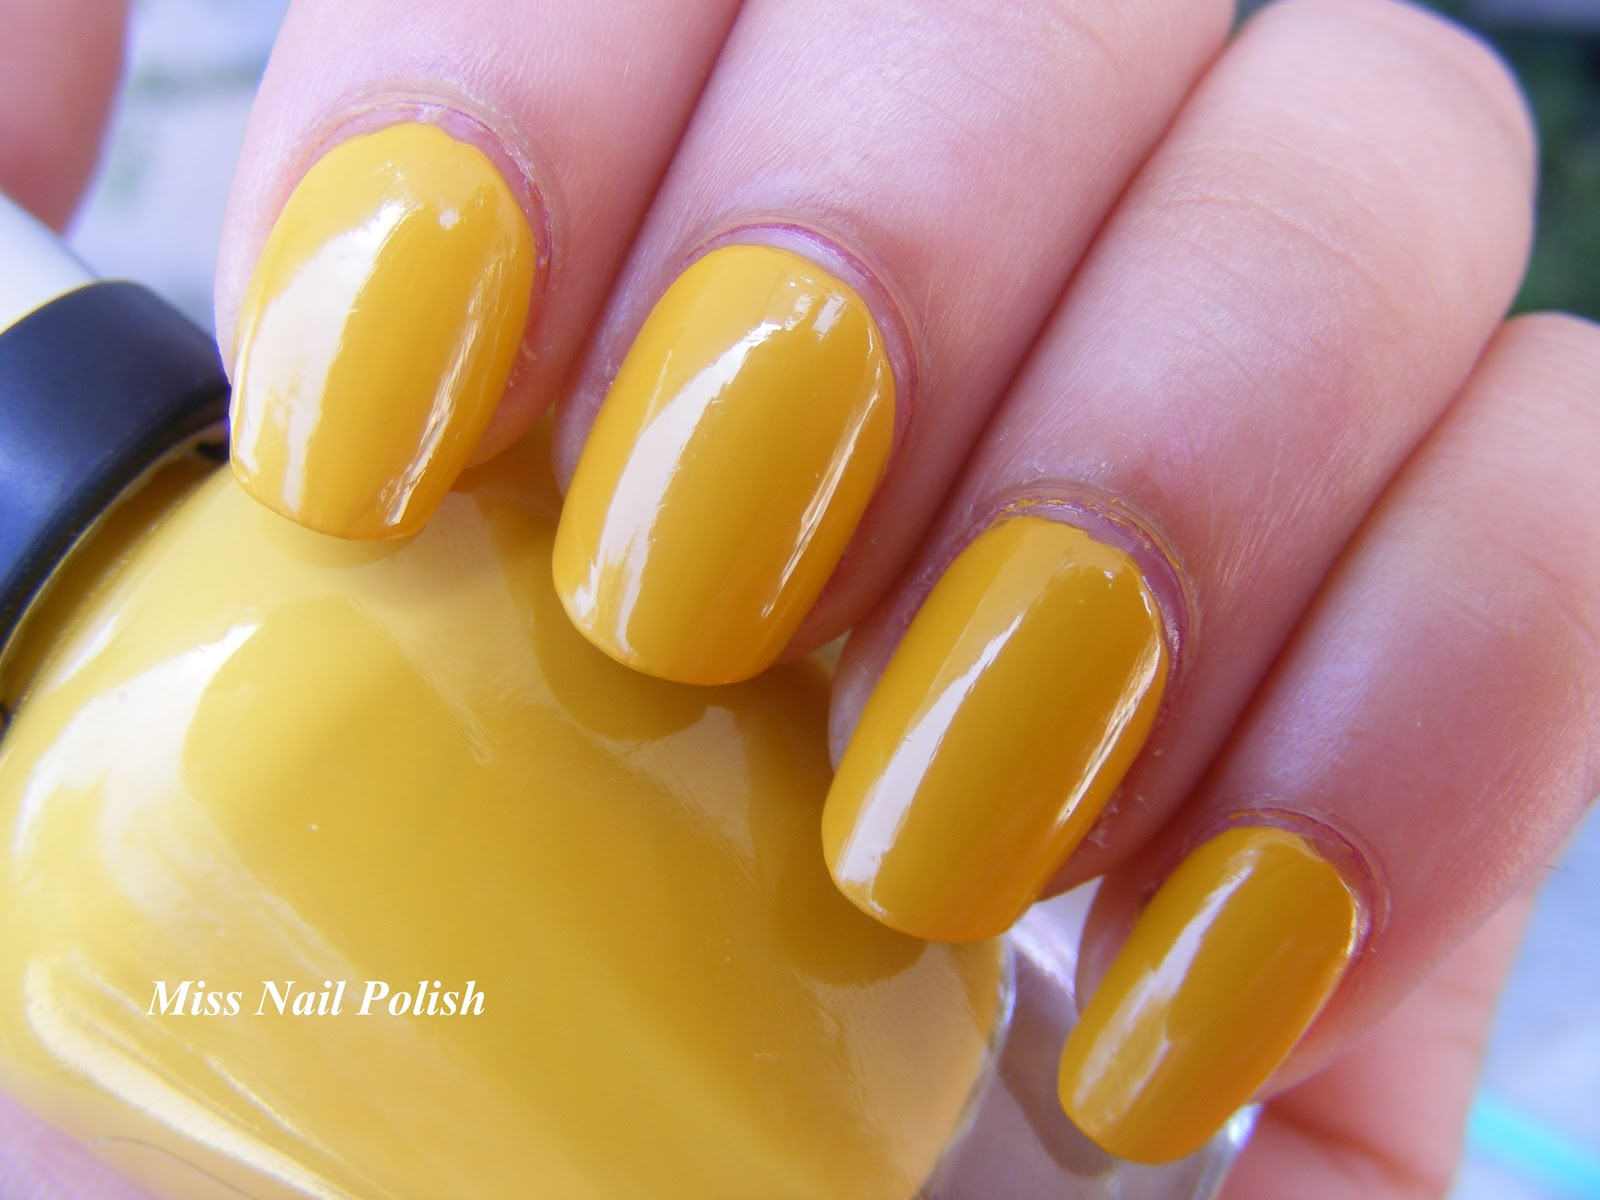 Miss Nail Polish Sally Hansen Designer Collection Spring 2013 Butterscotch And Soy Latte